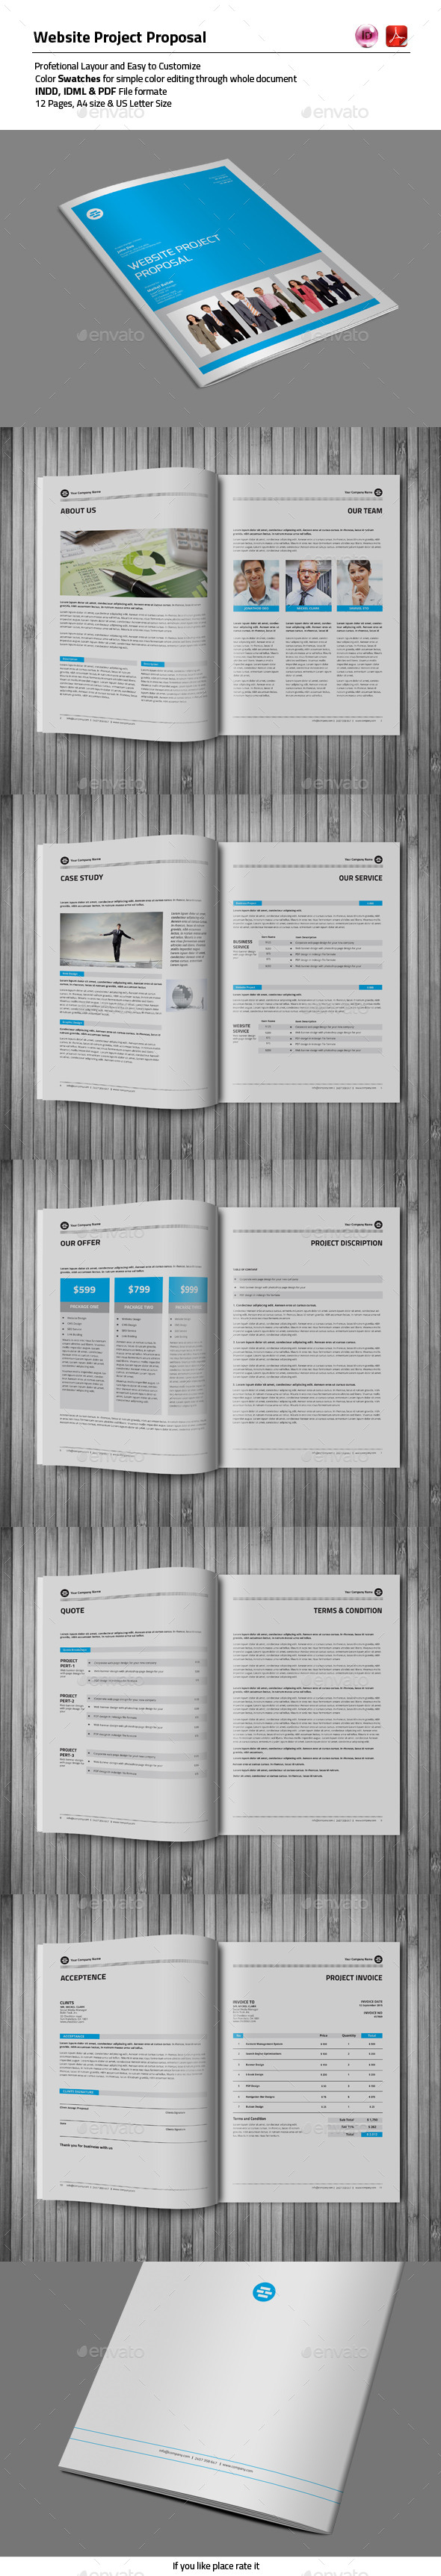 12 Pages Proposal Template - Proposals & Invoices Stationery